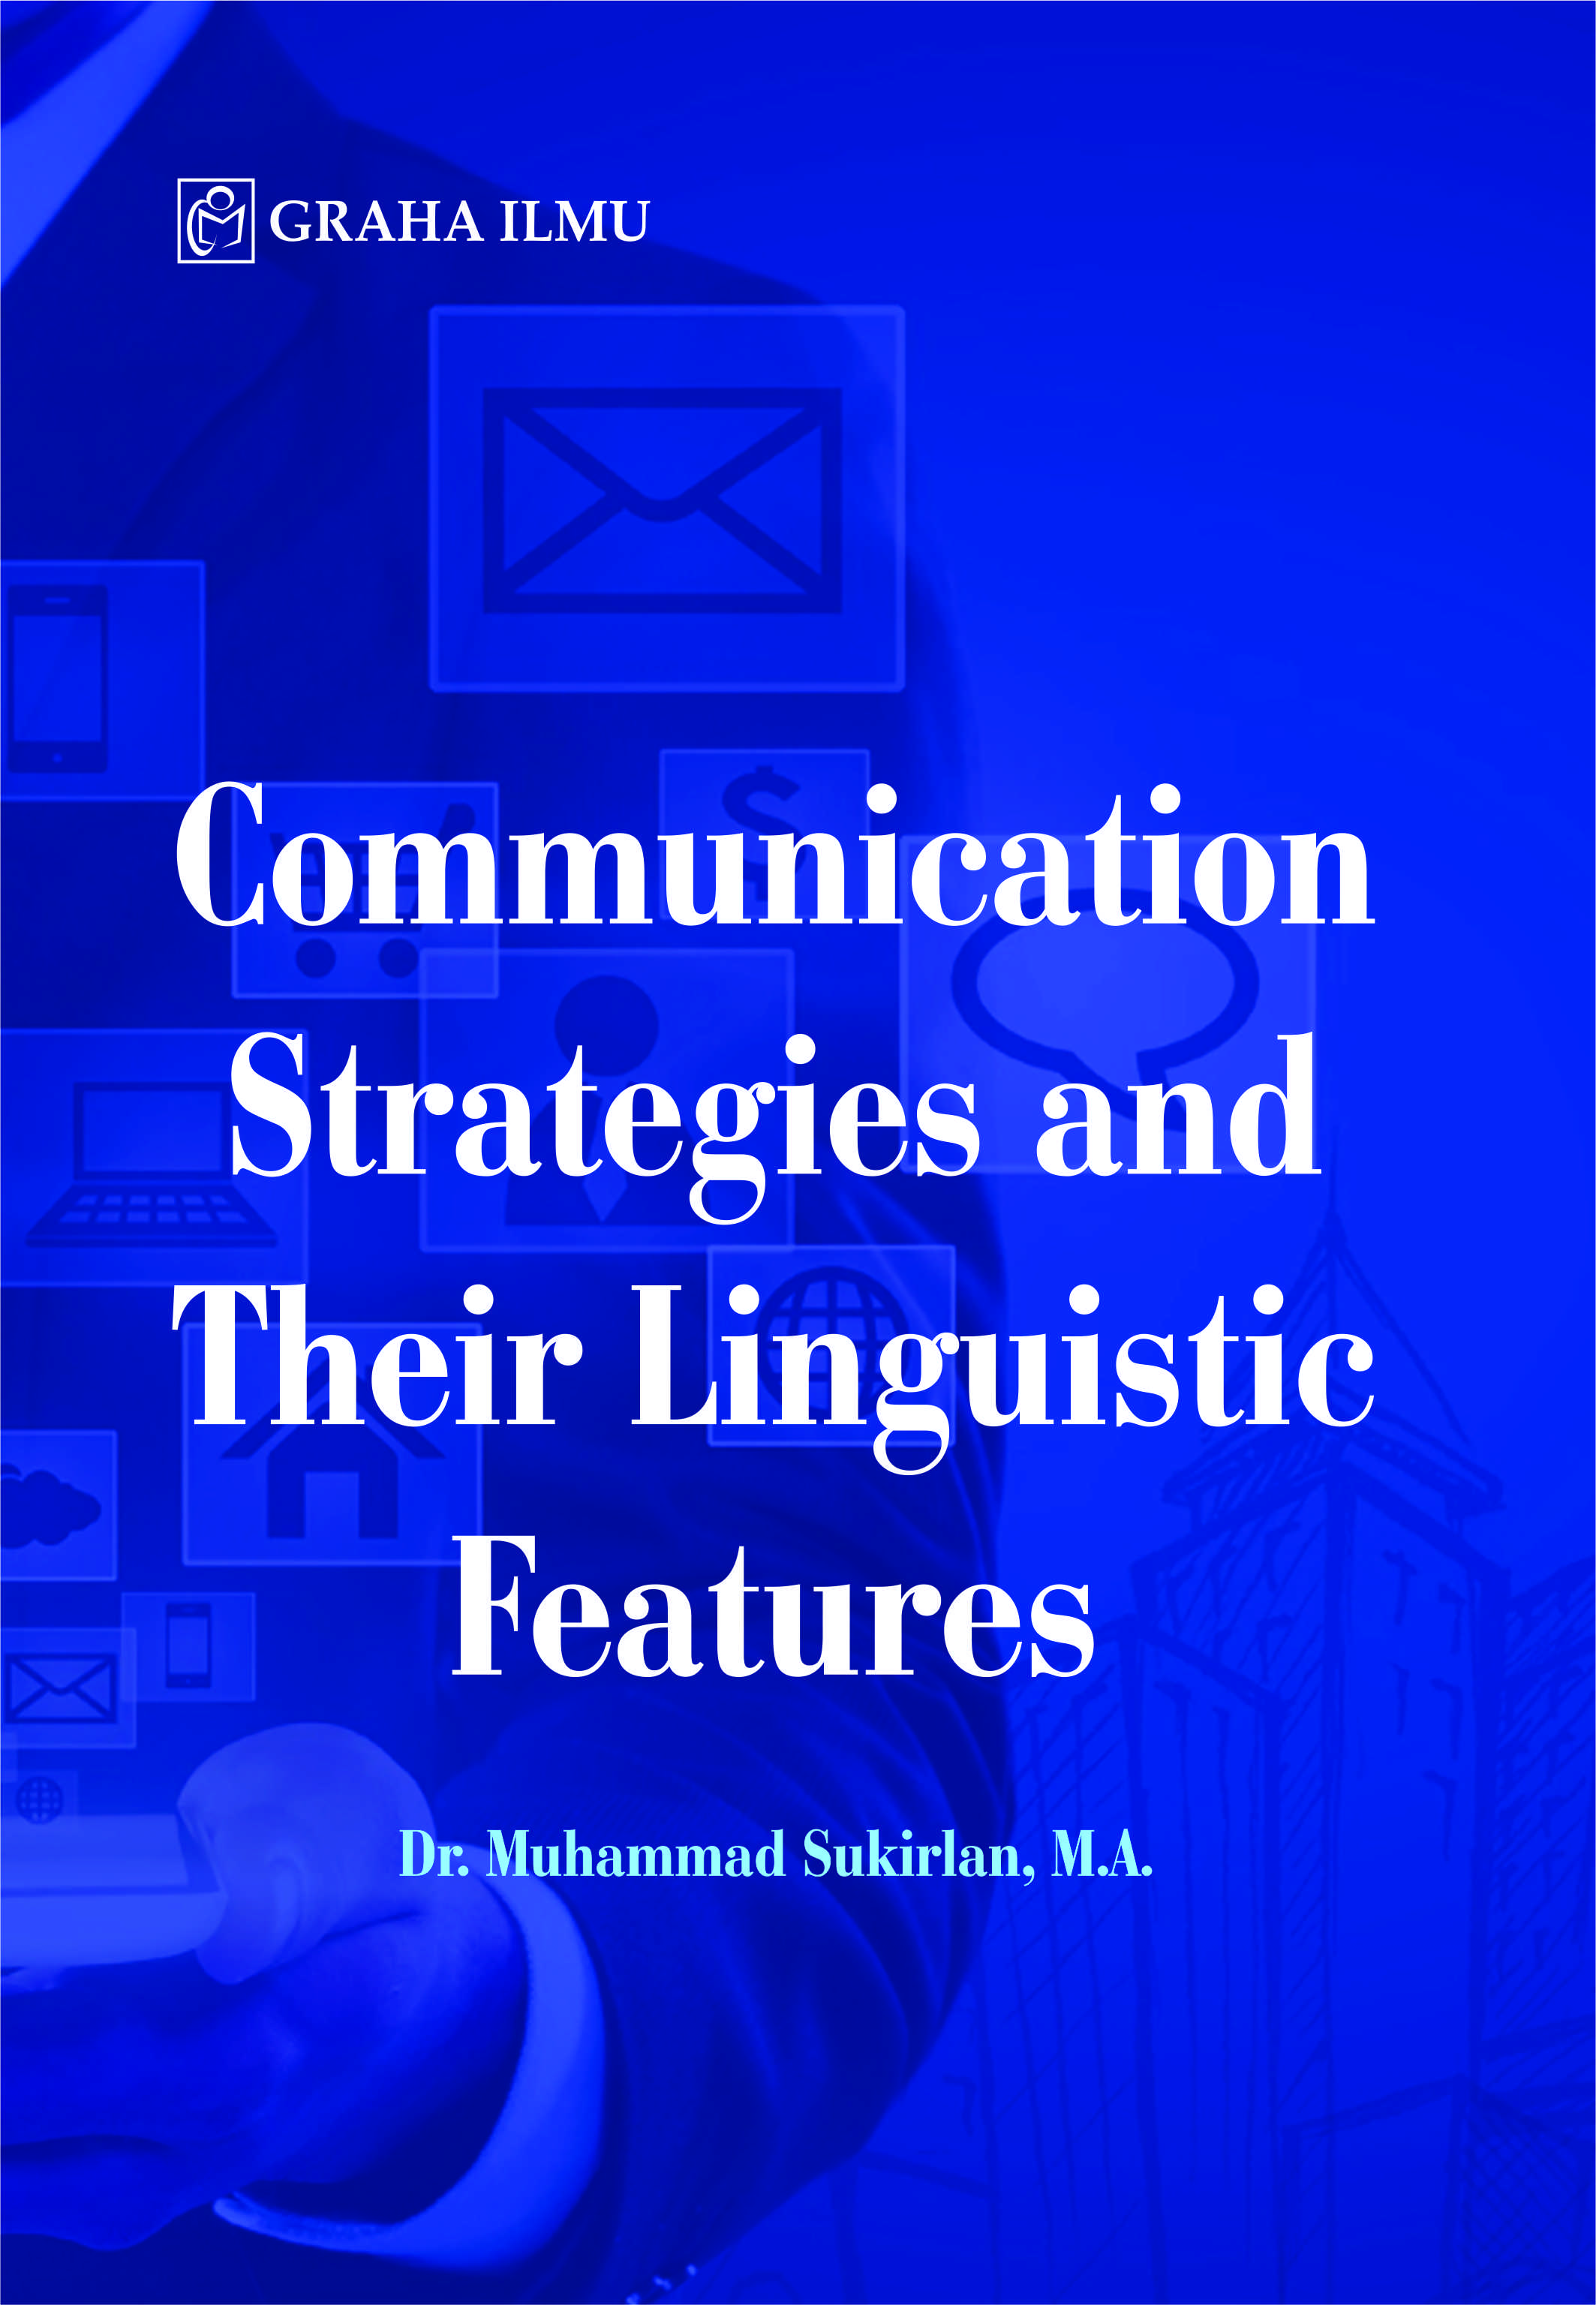 Communication strategies and their linguistic features